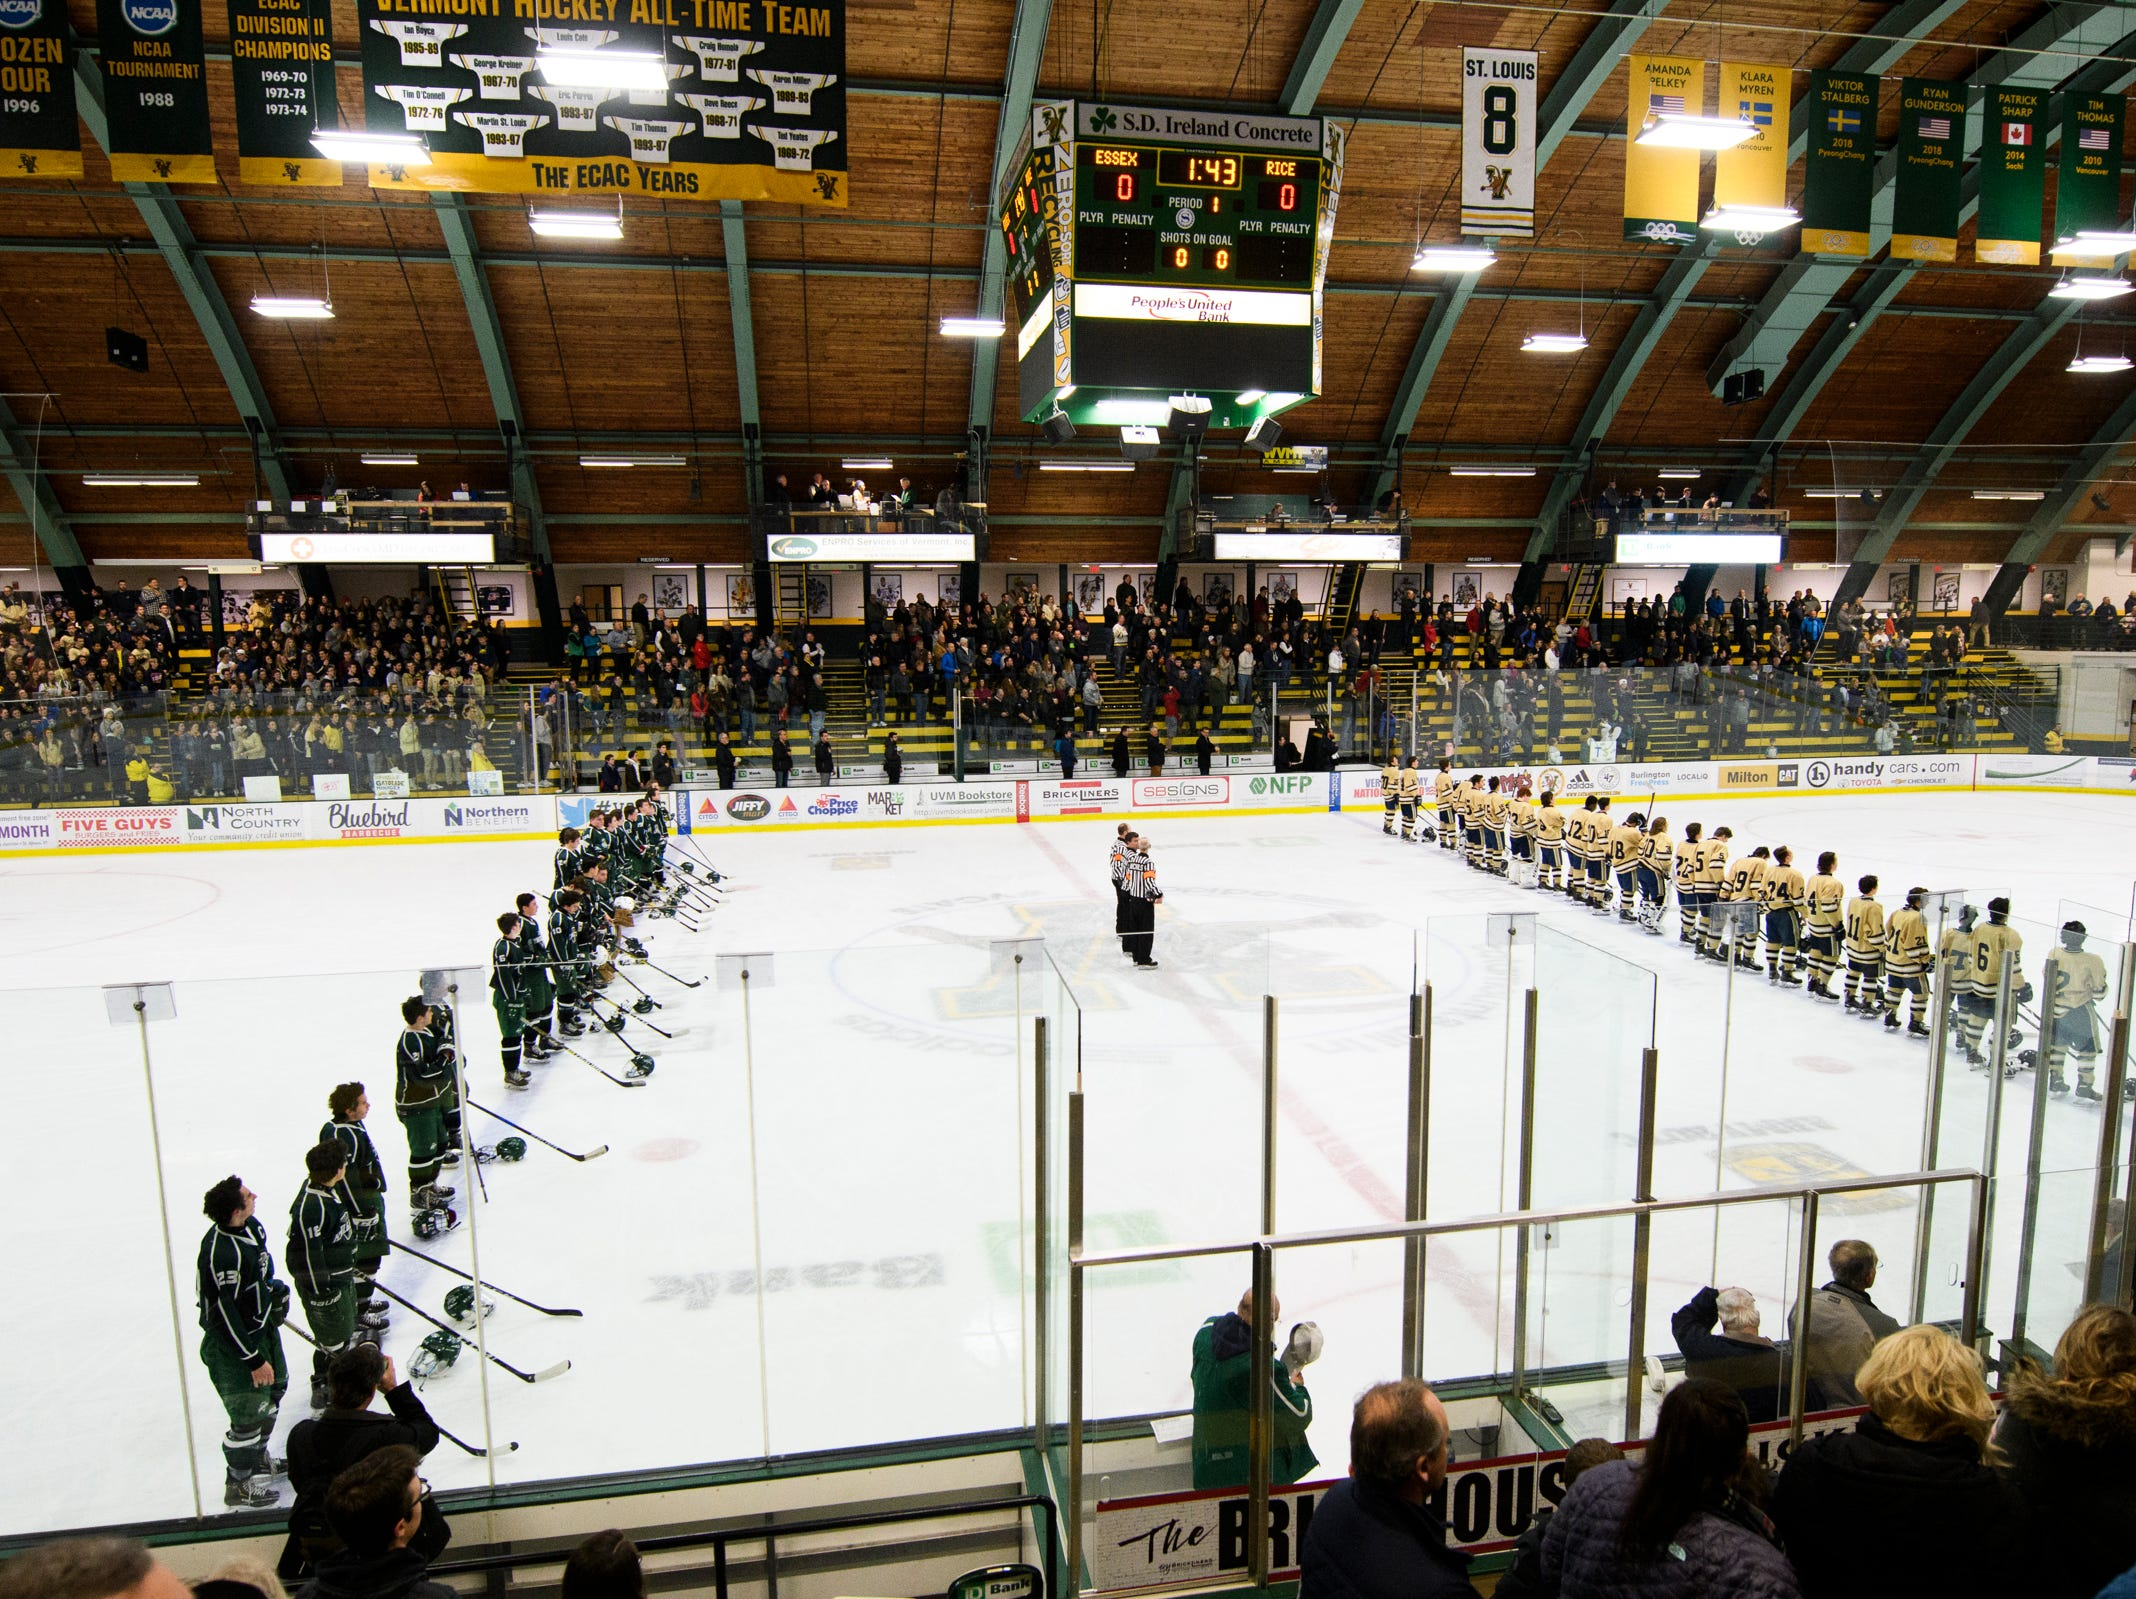 The teams listen to the National Anthem during the DI boys hockey championship game between the Rice Green Knights and the Essex Hornets at Gutterson Field House on Wednesday night March 13, 2019 in Burlington, Vermont.